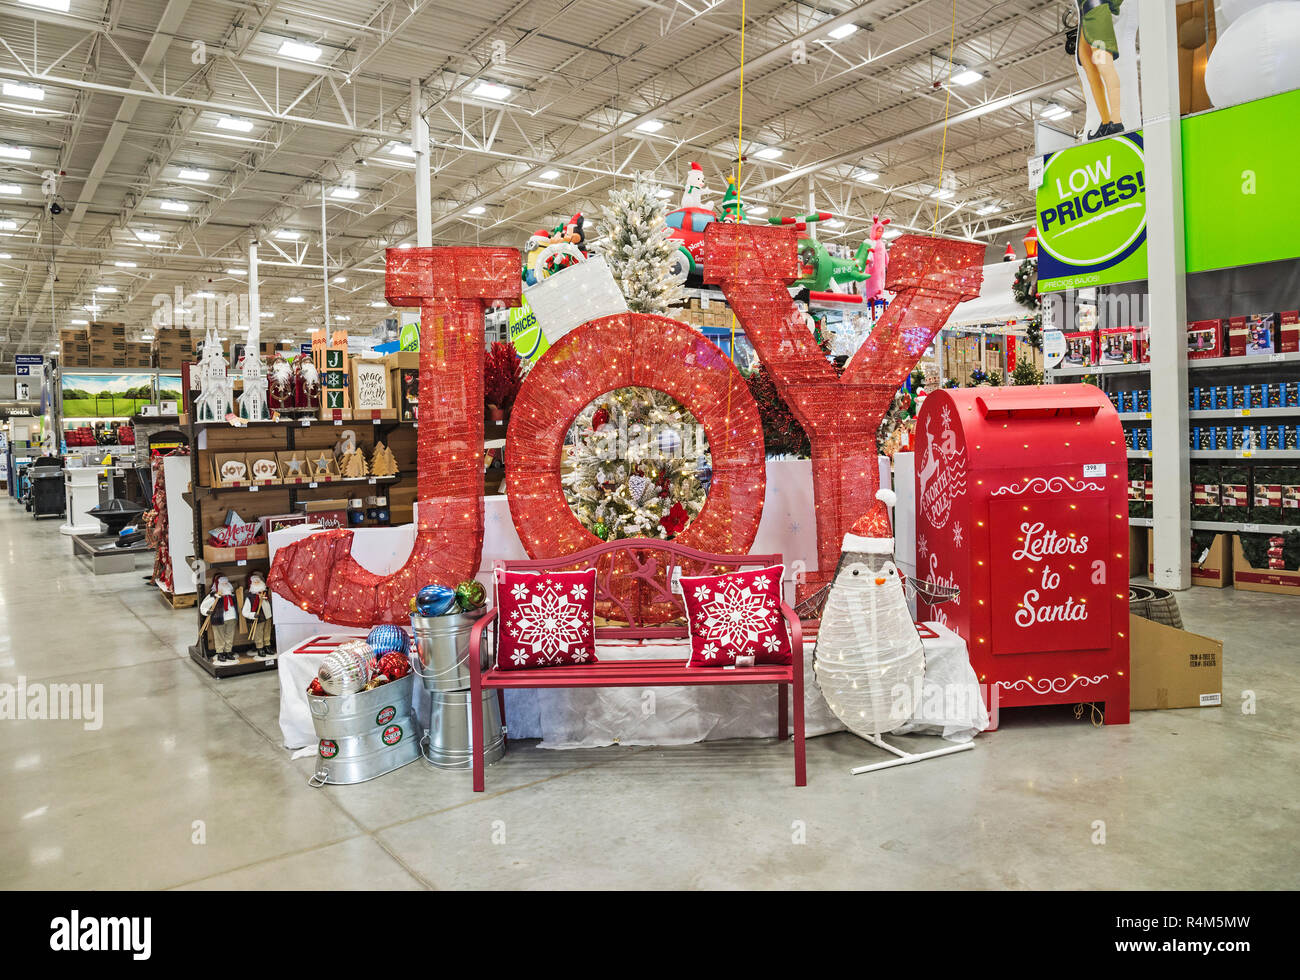 Lowes Christmas.Christmas Sales At Lowe S Outdoor Store Stock Photo